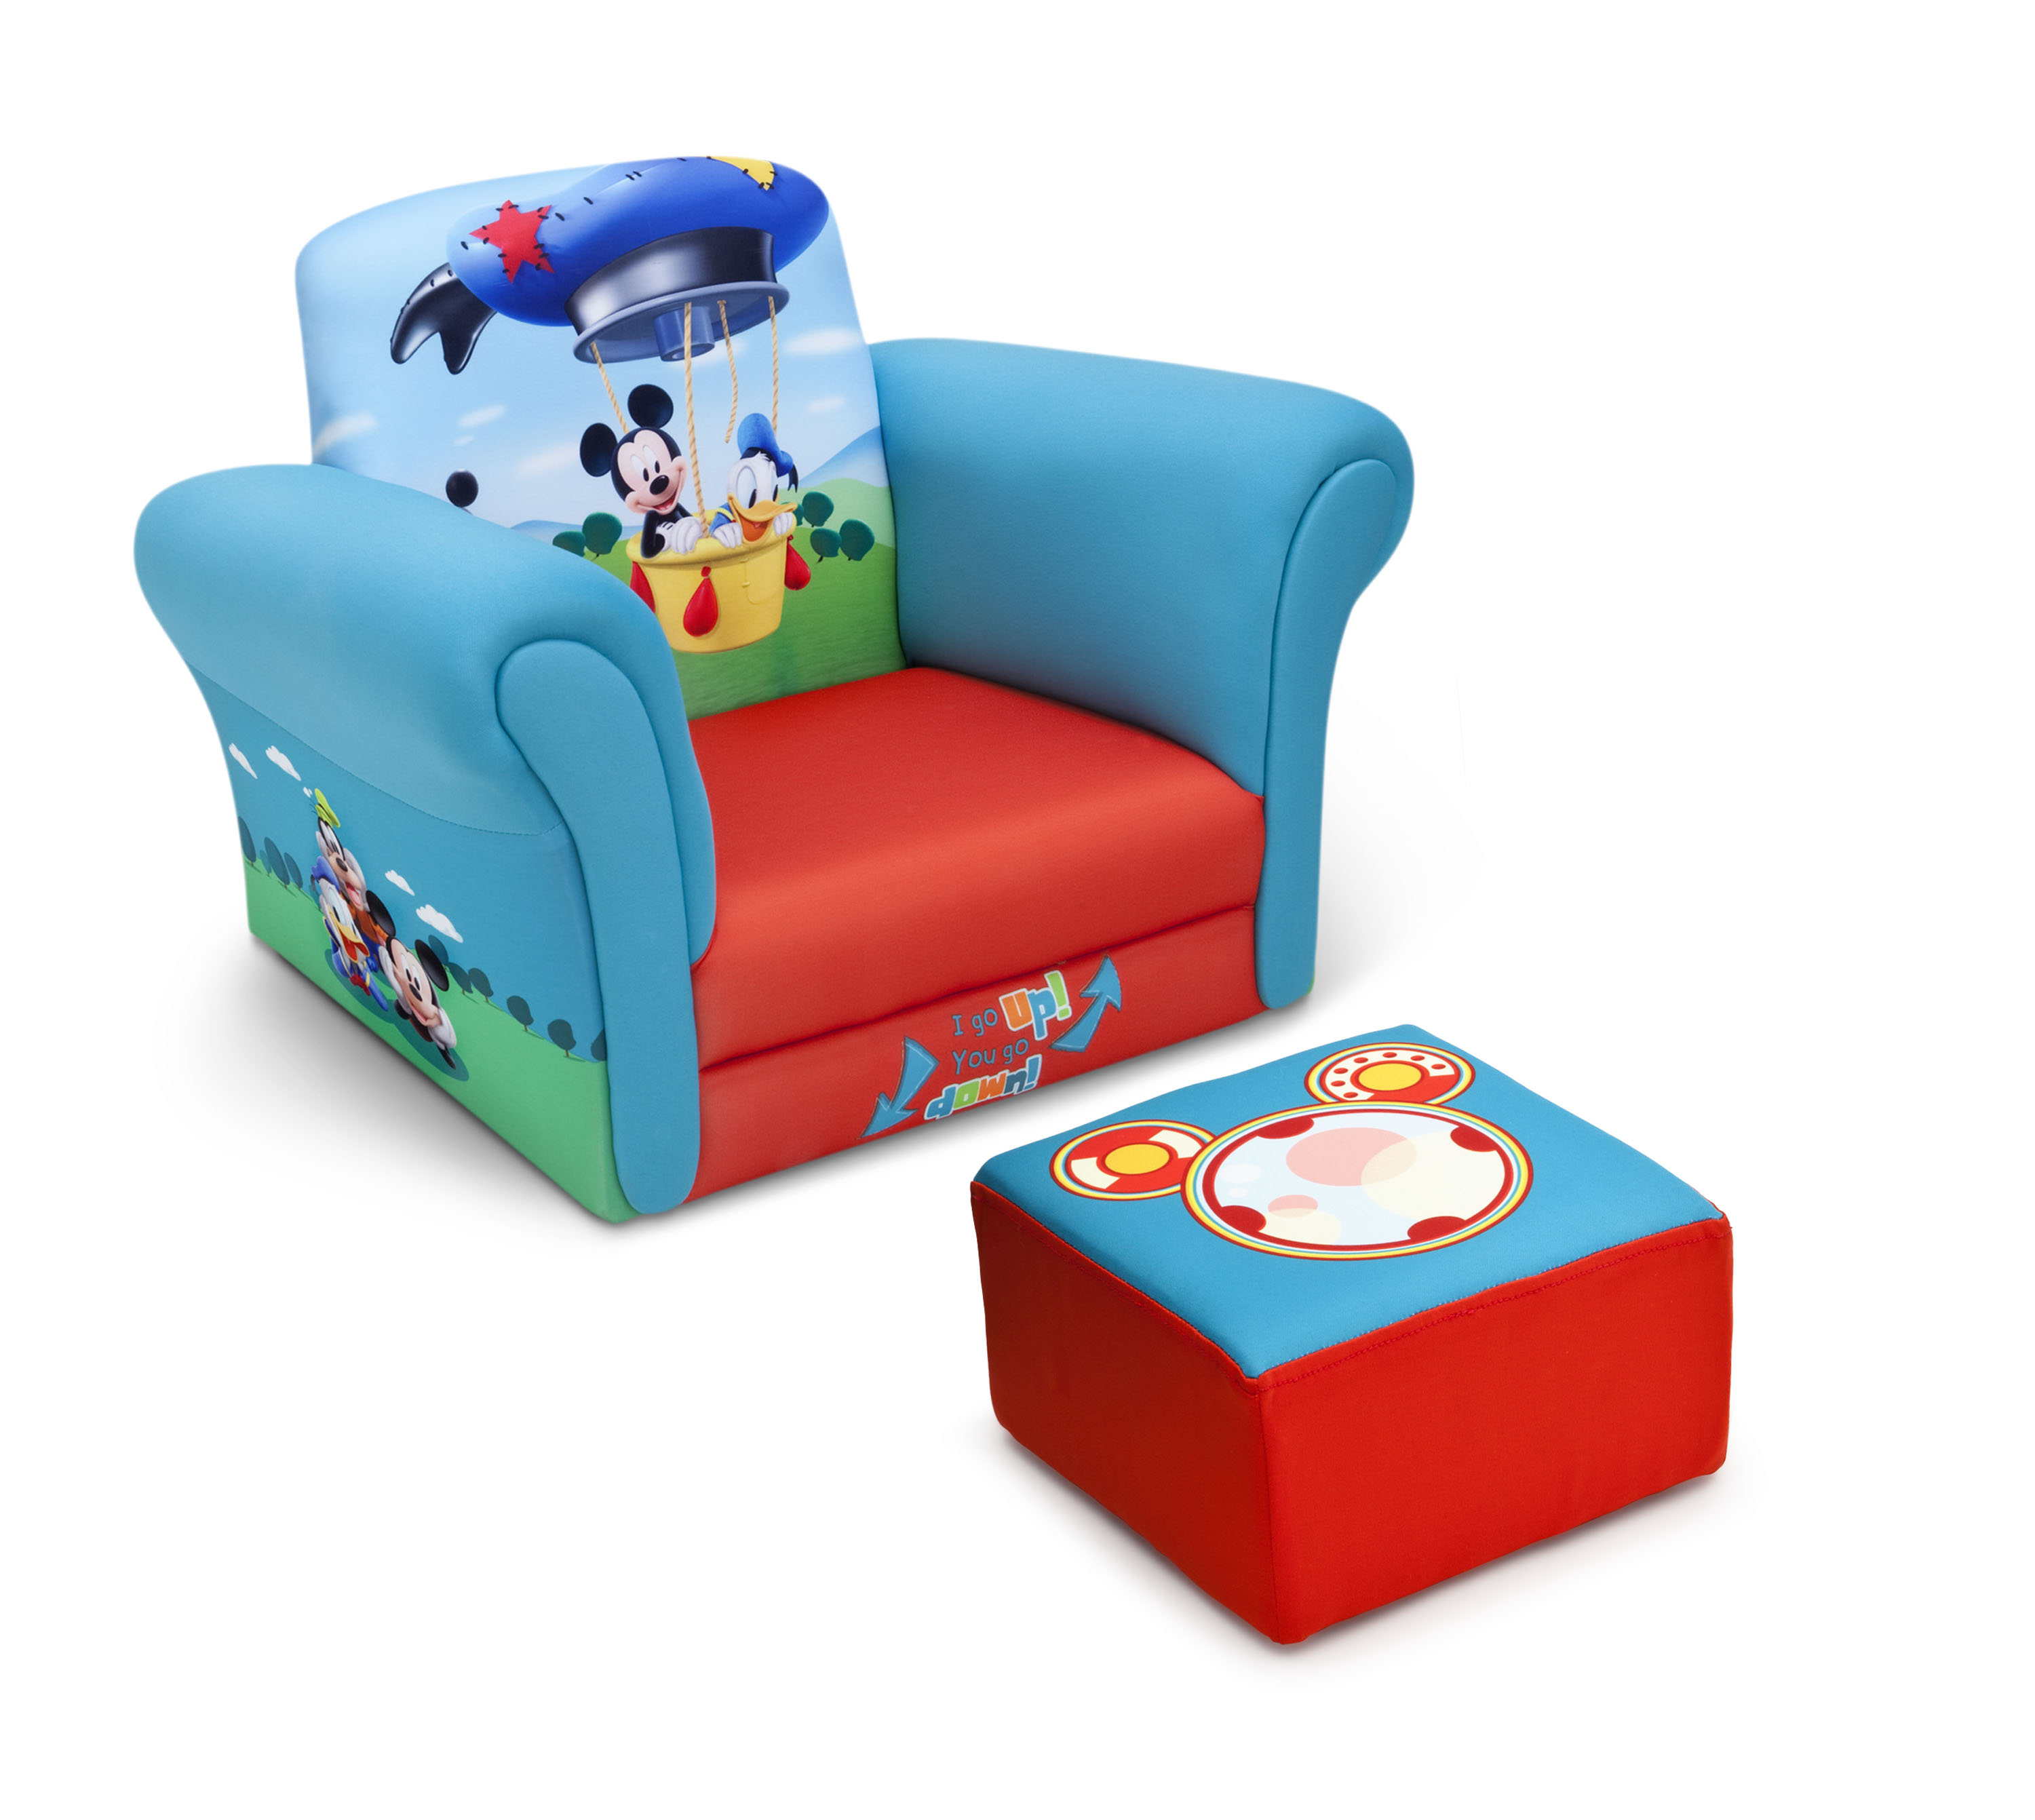 Upholstered Toddler Chair Delta Children Mickey Mouse Upholstered Chair With Ottoman